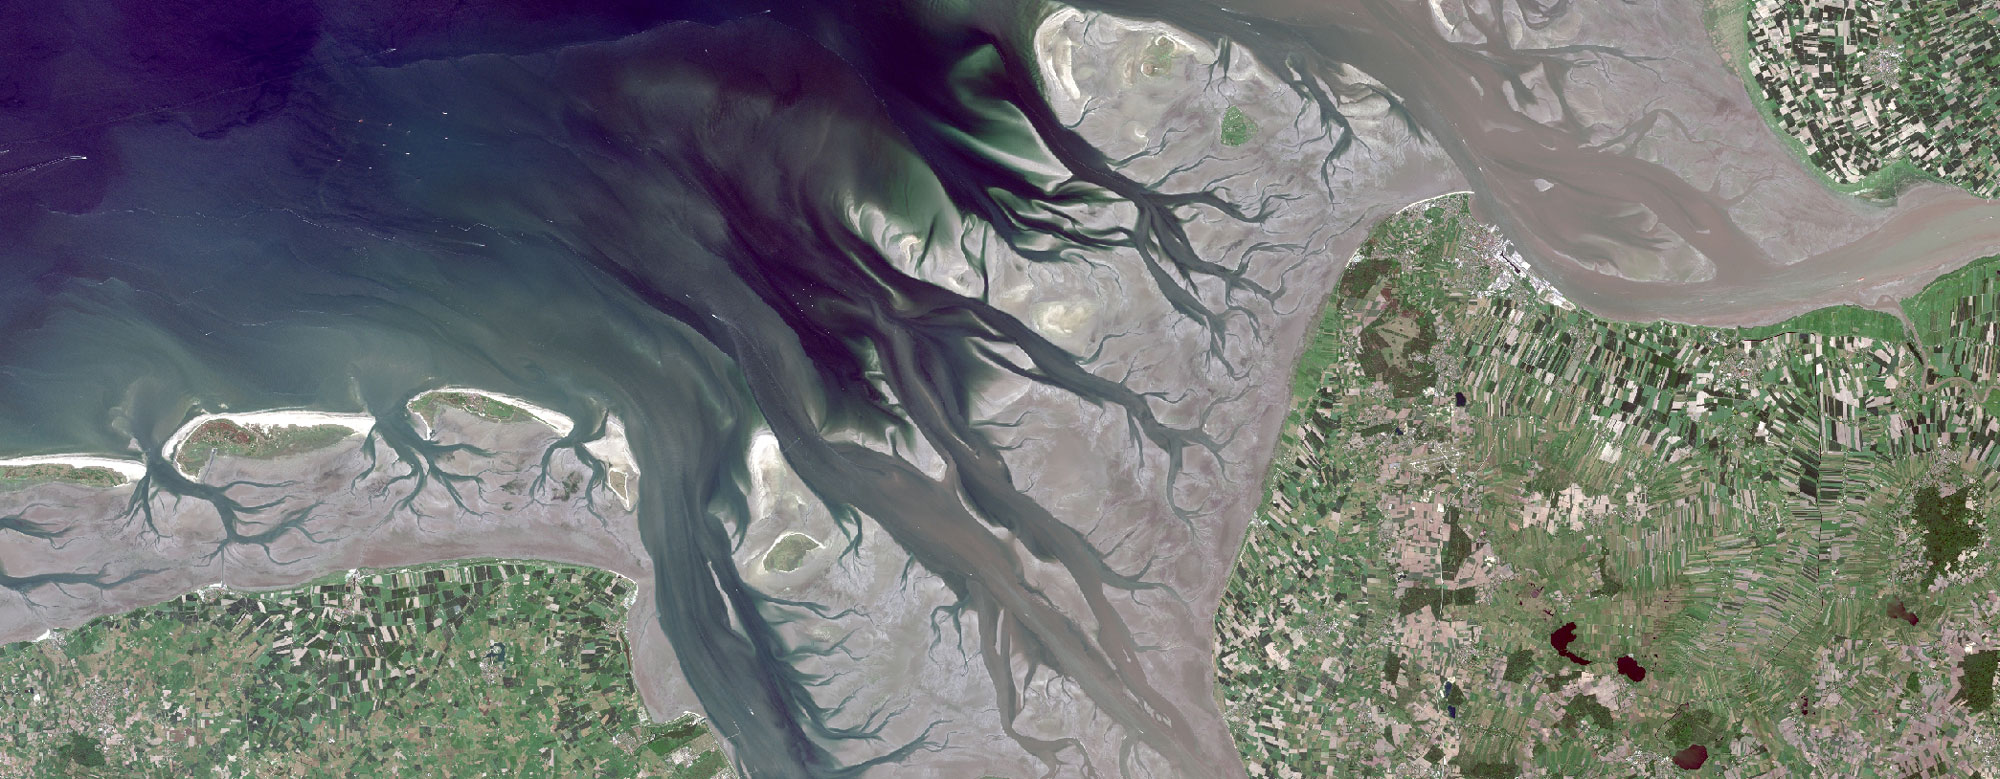 Das Wattenmeer bei Hamburg - UNESCO-Weltnaturerbe (c) European Space Agency